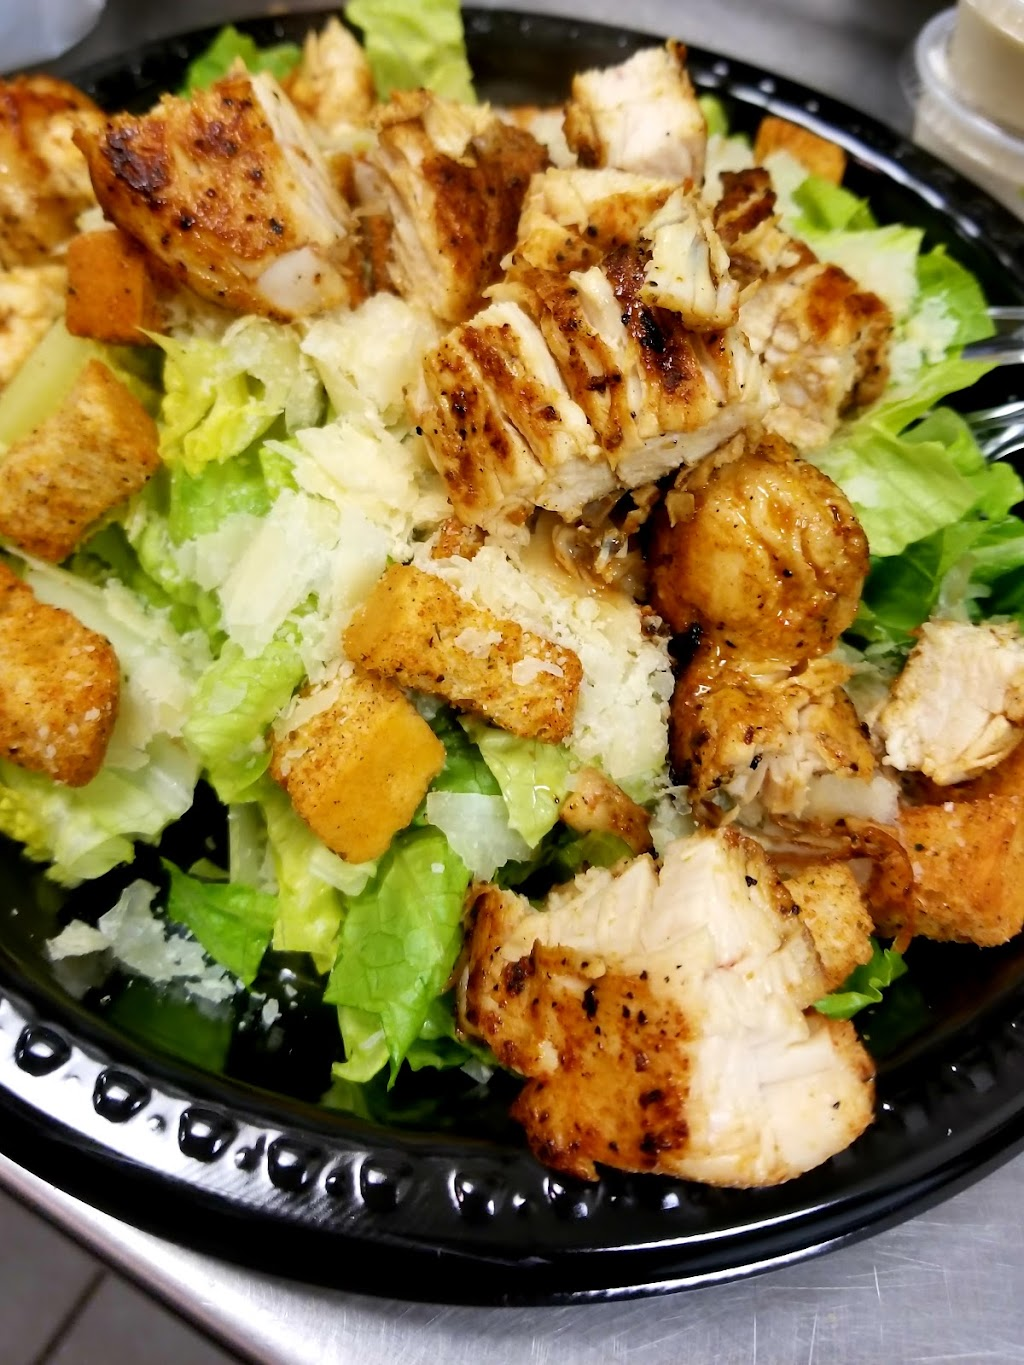 Twin Creeks Cafe - cafe    Photo 3 of 10   Address: 3400 W Loop 820 S, Fort Worth, TX 76116, USA   Phone: (817) 696-4360